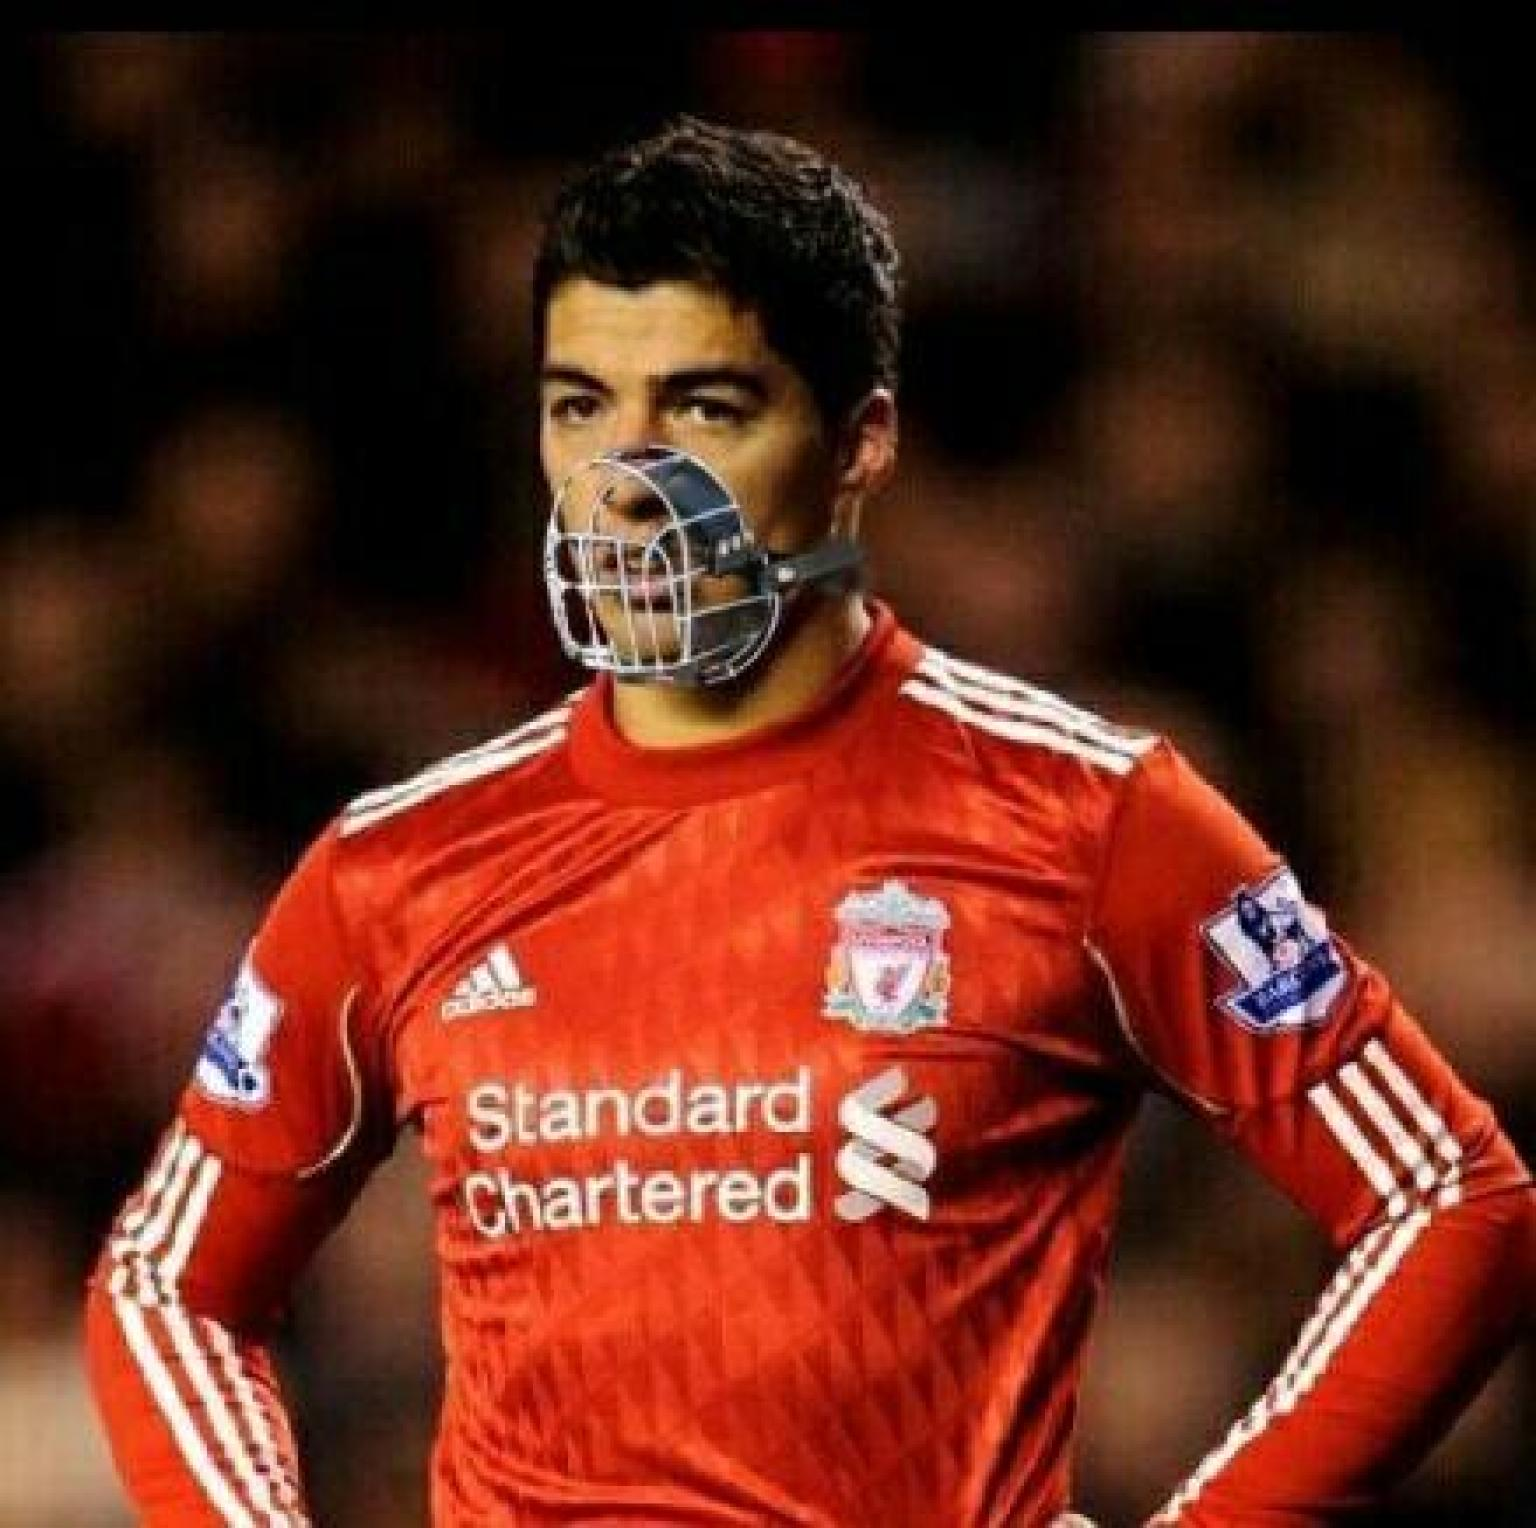 Suarez: Warped, a Bit Peckish, but a Ban Doesn't Fit